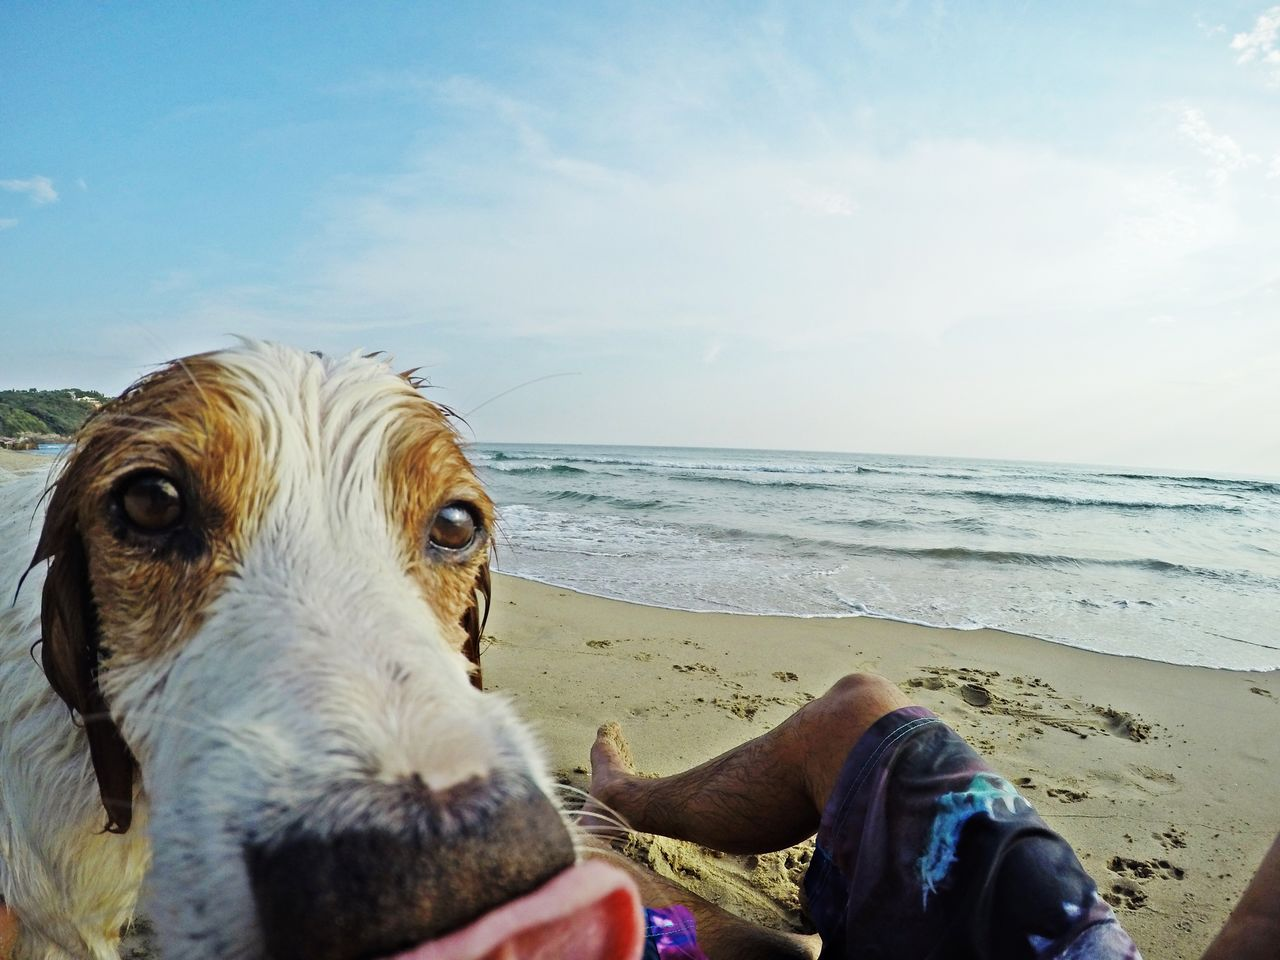 Sea Traveling Travel Travelling Travel Photography Dog Dogslife Dogstagram Dog Swimming Dog Life Gopro Goprohero4 Italy Sperlonga Sperlong,Italy Sperlonga,Italy 300gradini, Gaeta